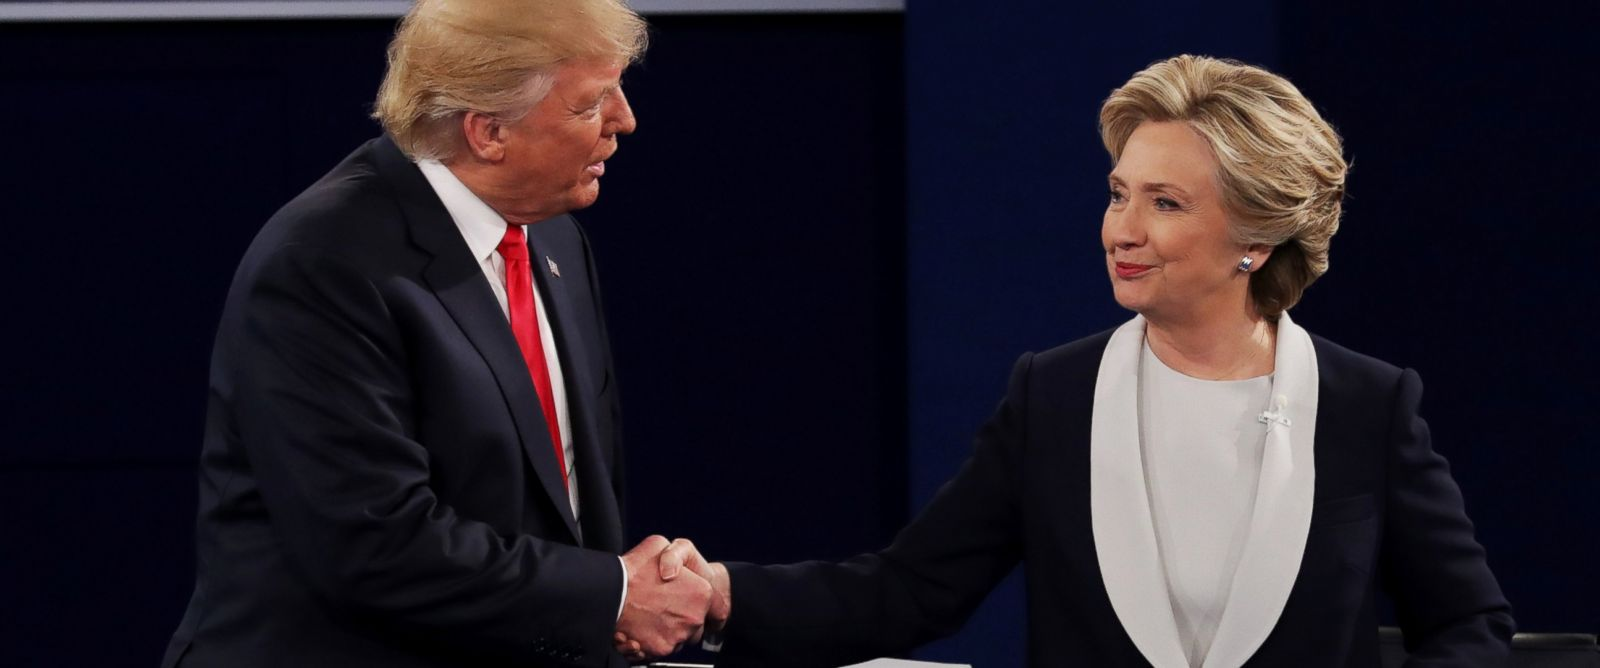 Hillary Clinton and Donald Trump shake hands before the second Presidential Debate.